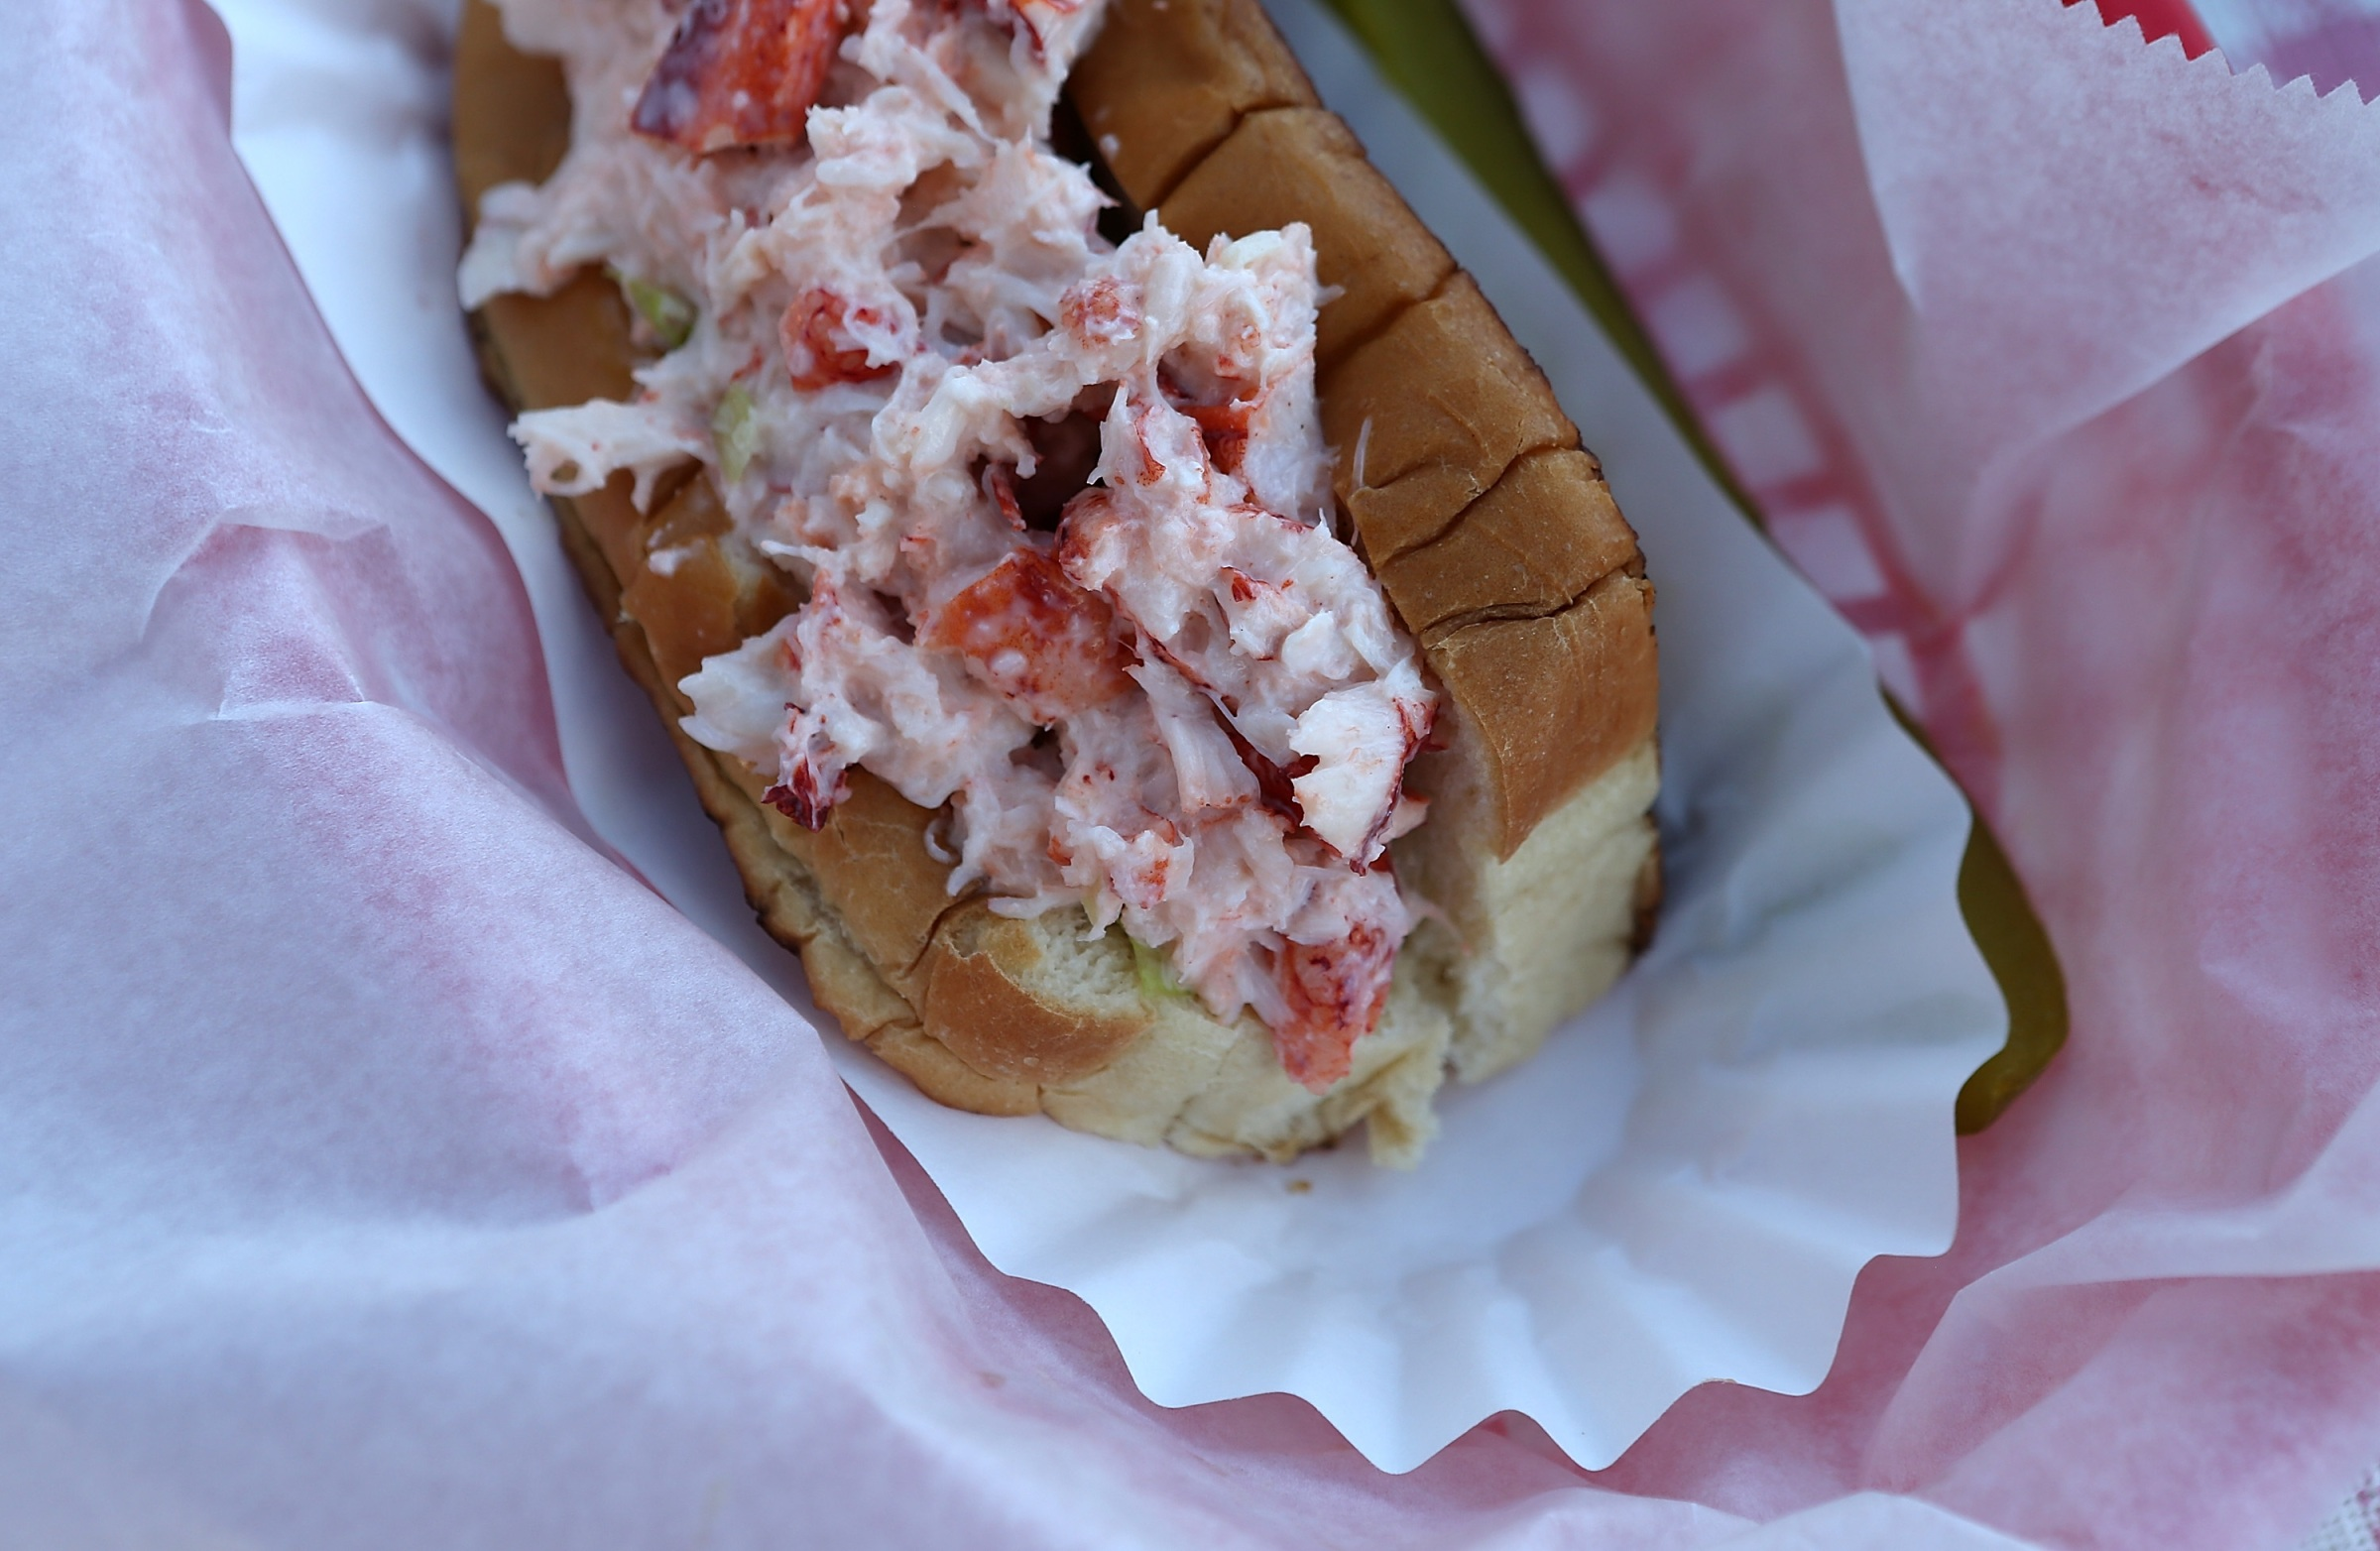 This lobster roll is from Benny's Famous Fried Clams in Portland, Maine, but you see the point.